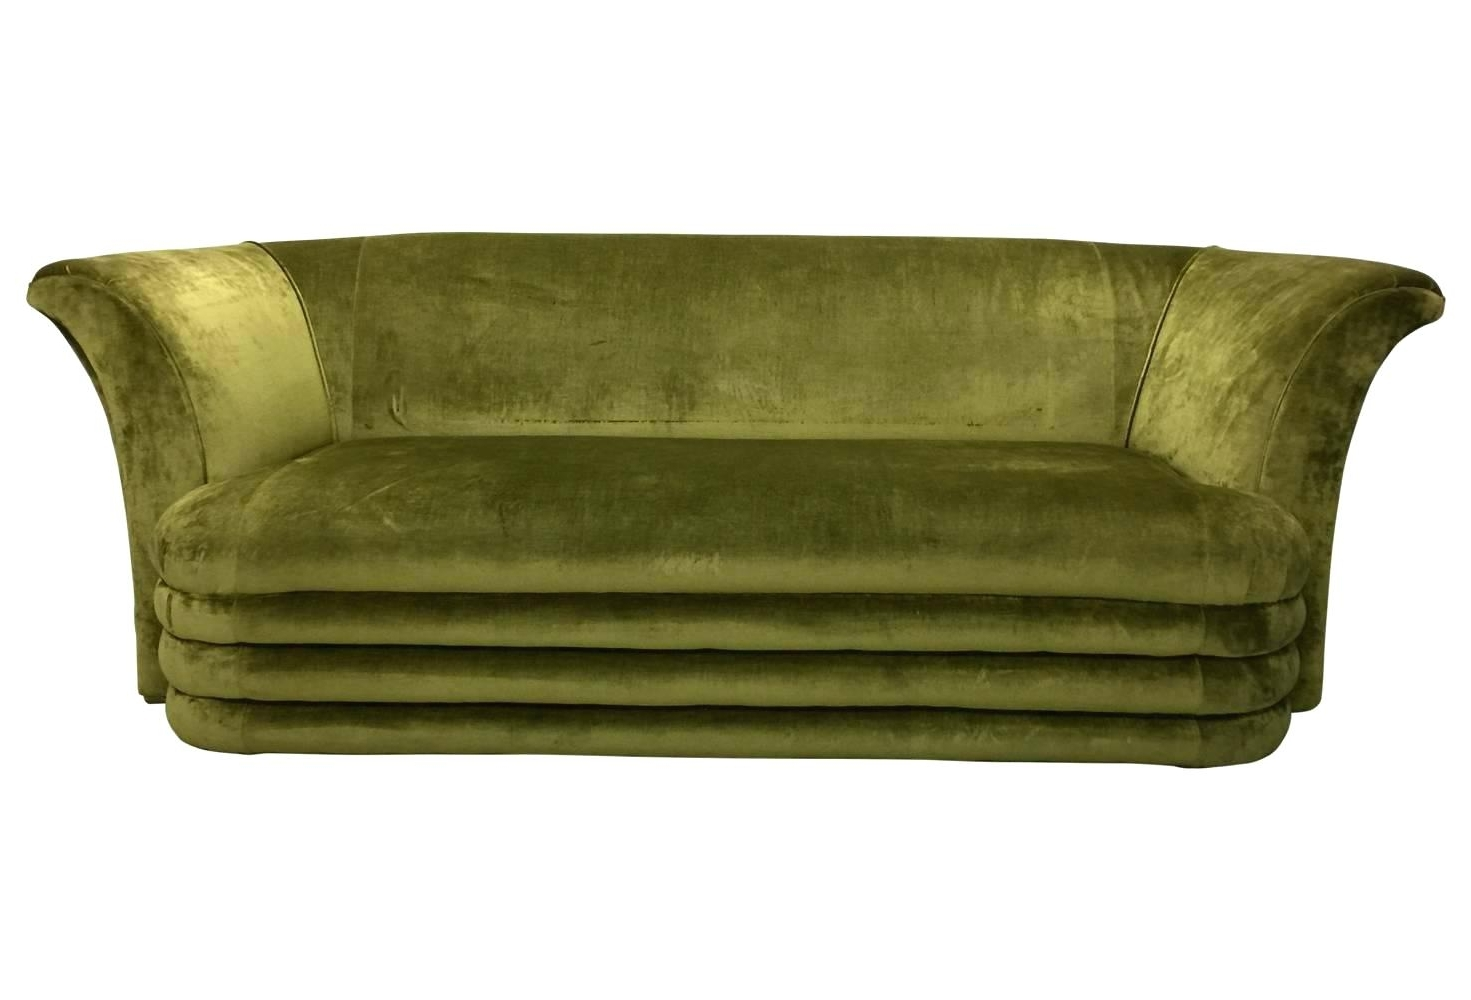 2019 Art Deco Sofas For Modern Art Deco Furniture Mid Century Modern Art Inspired (View 18 of 20)